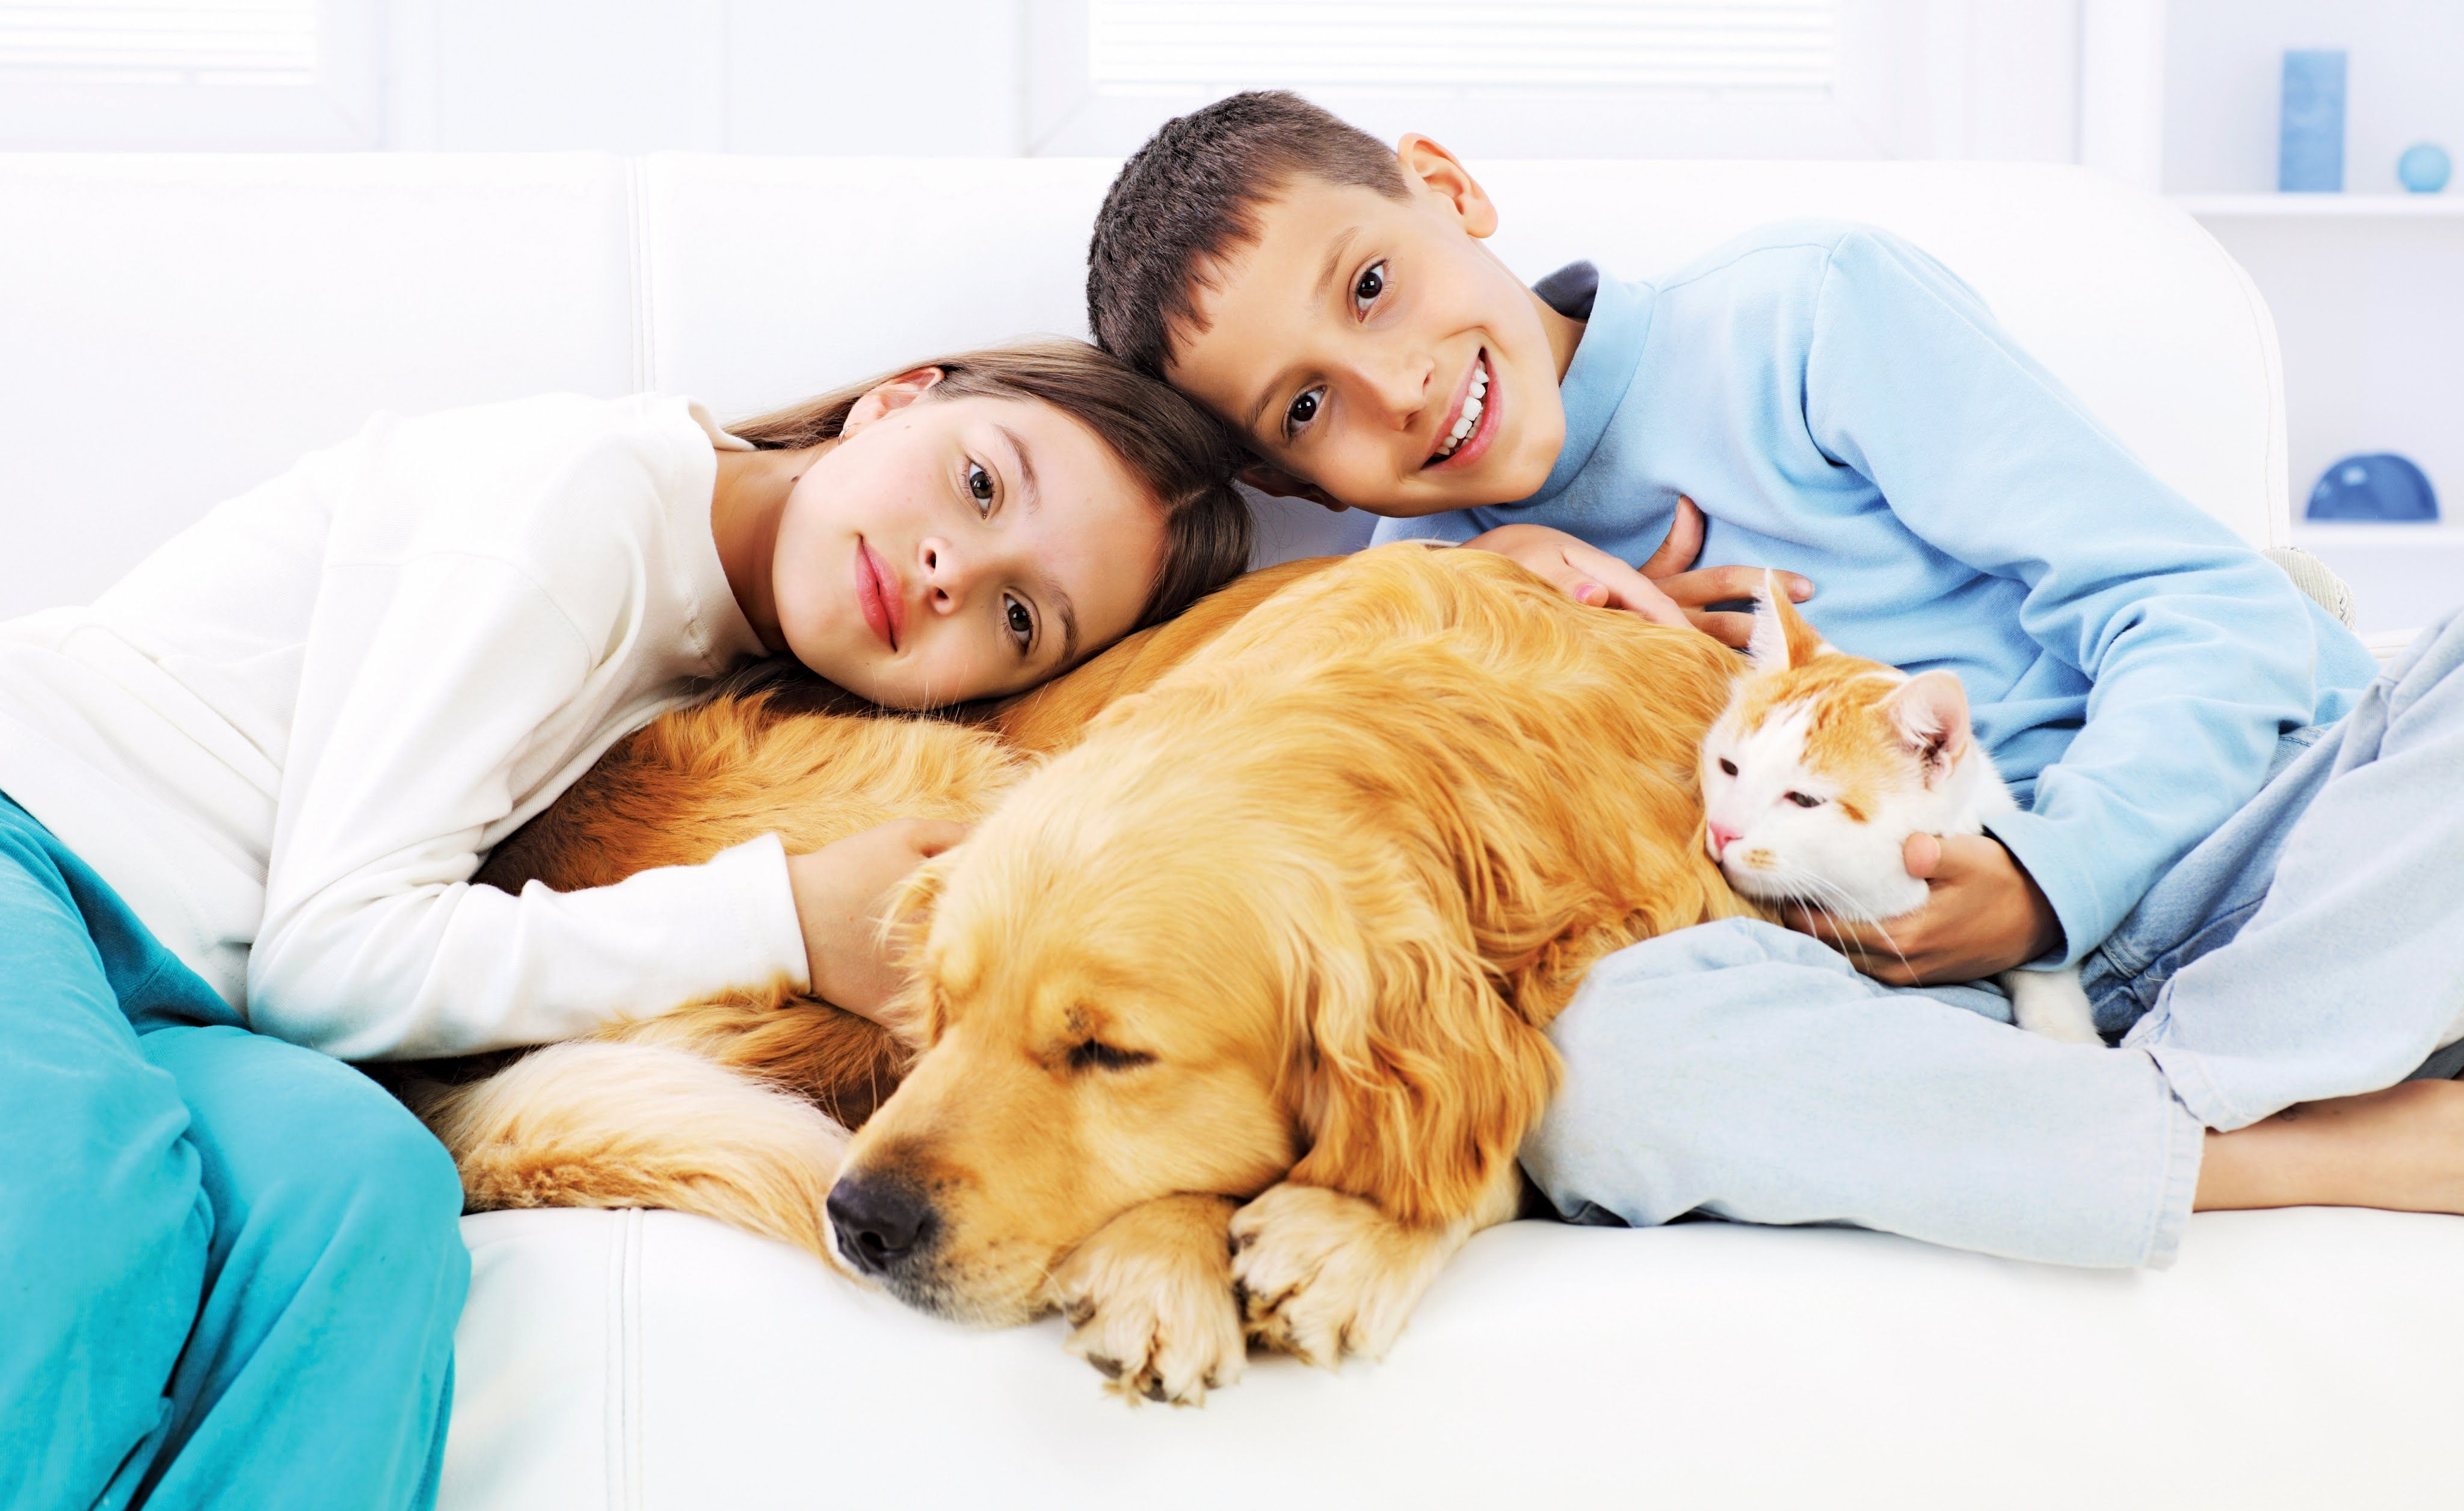 Pets Australia Local Hot Free Classifieds Colourful Ads Special Services Best Pets For Kids Pets Death Of A Pet